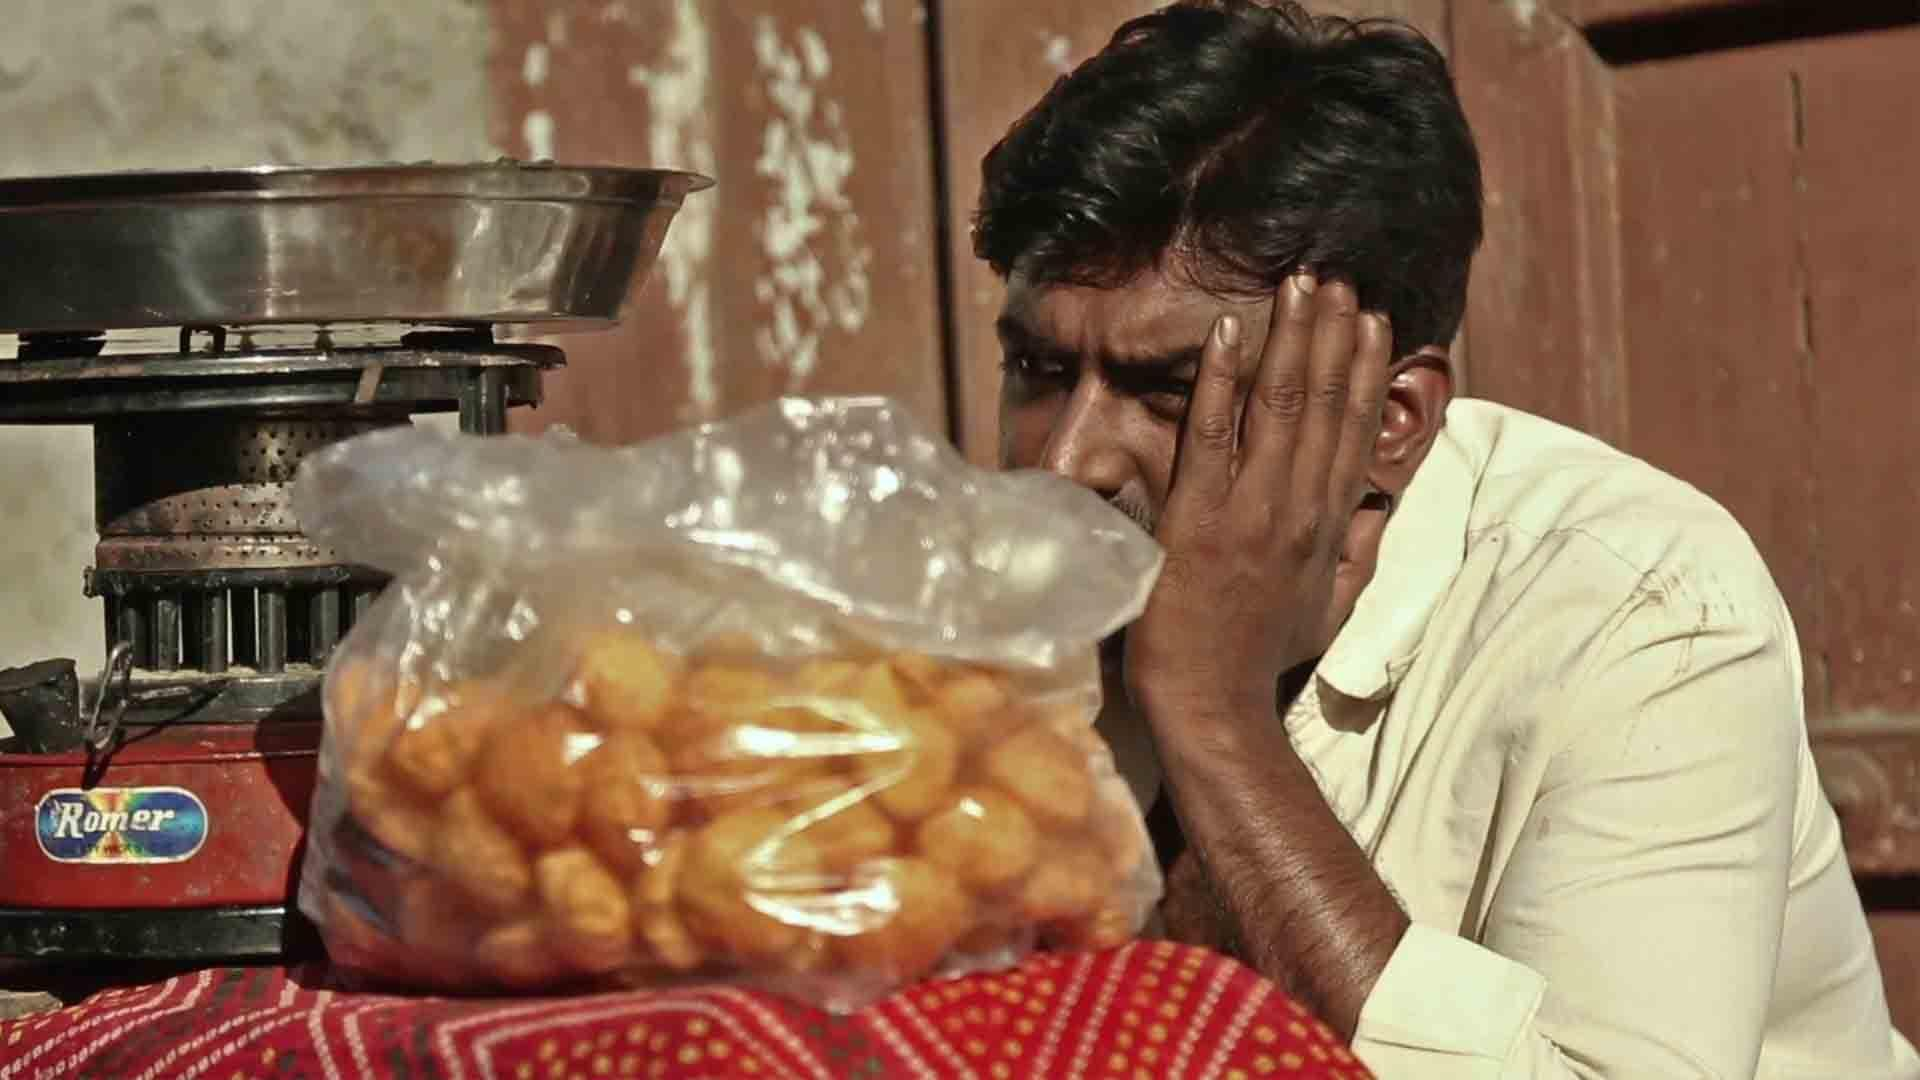 Peshab by Pushpak Jain - India Drama Short Film | Viddsee